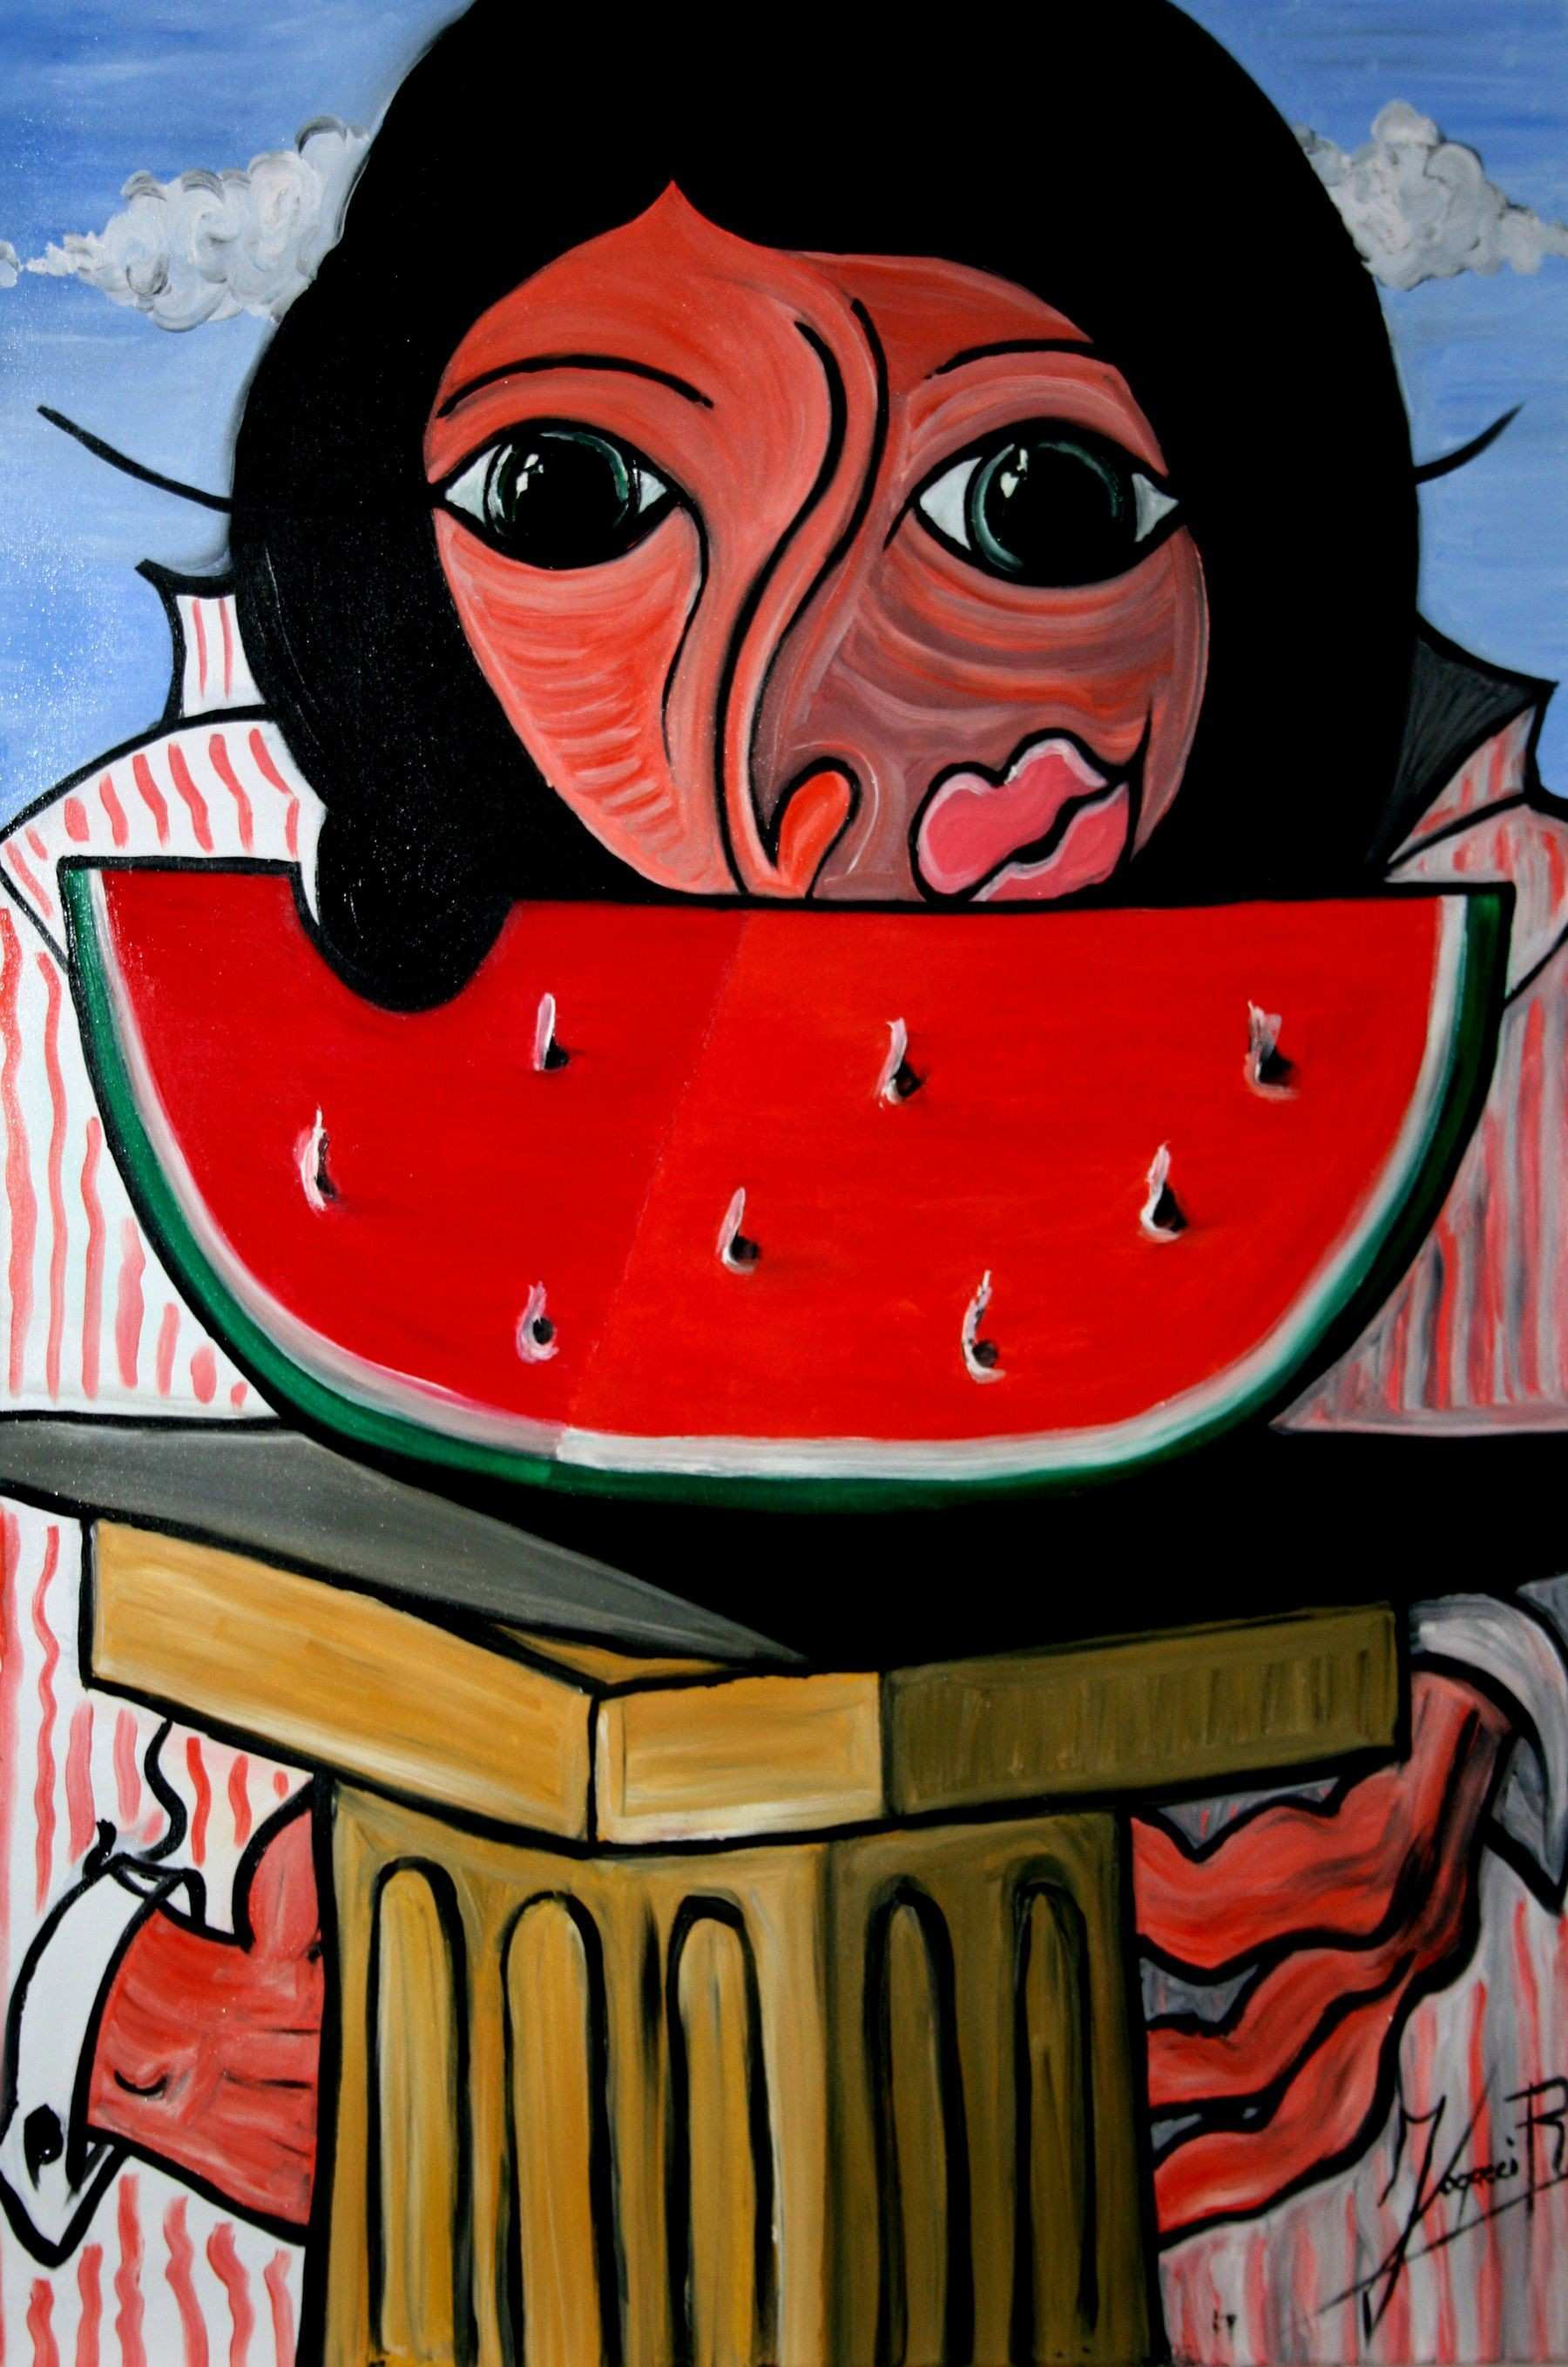 Work of Rubens Fogacci Title The Watermelon Dimensions 50x70